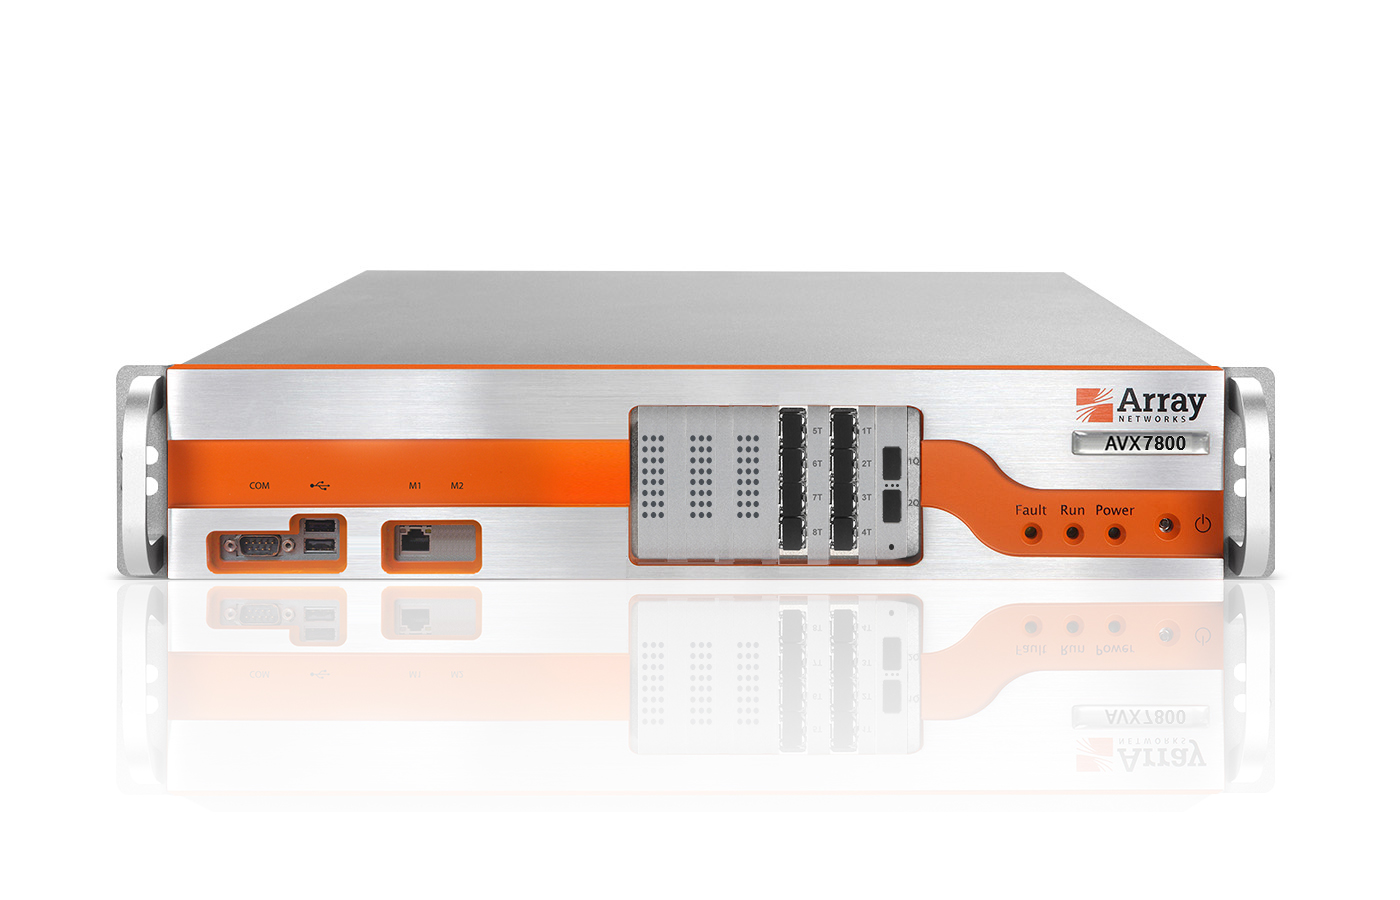 Array AVX7800 Network Functions Platform